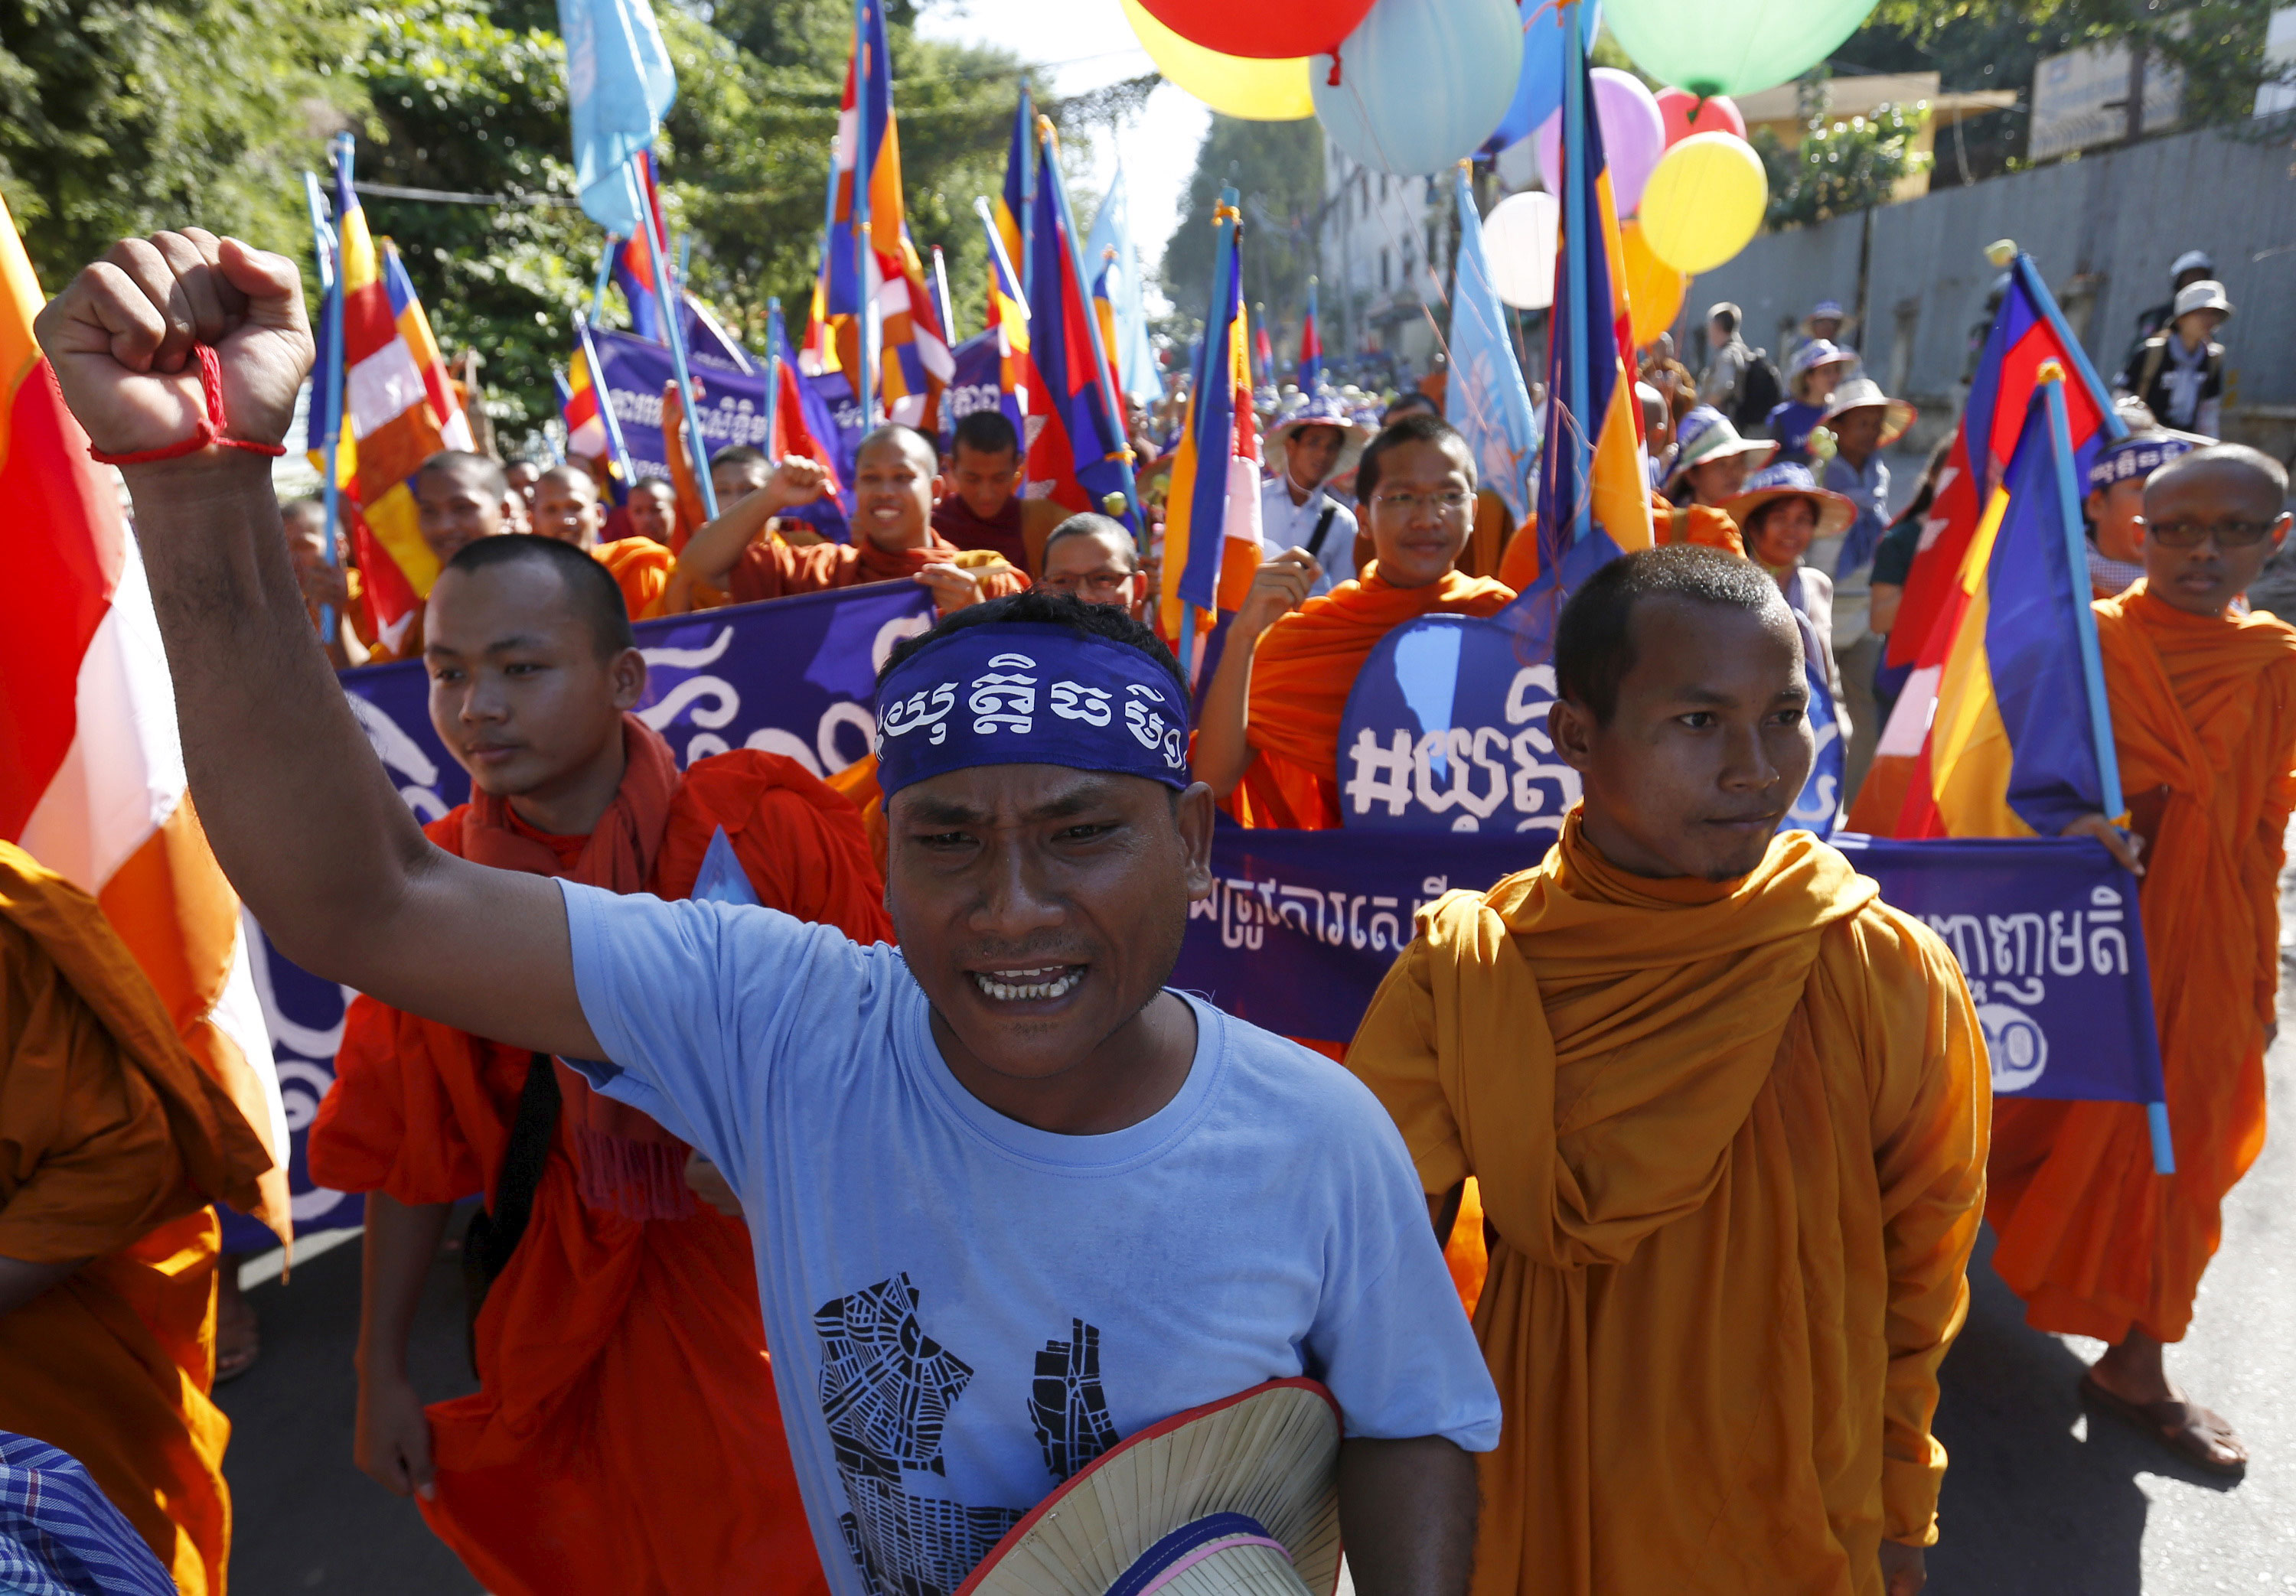 Buddhist monks walk along a street during a march to celebrate Human Rights Day, in Phnom Penh, Cambodia. [Samrang Pring/Reuters]